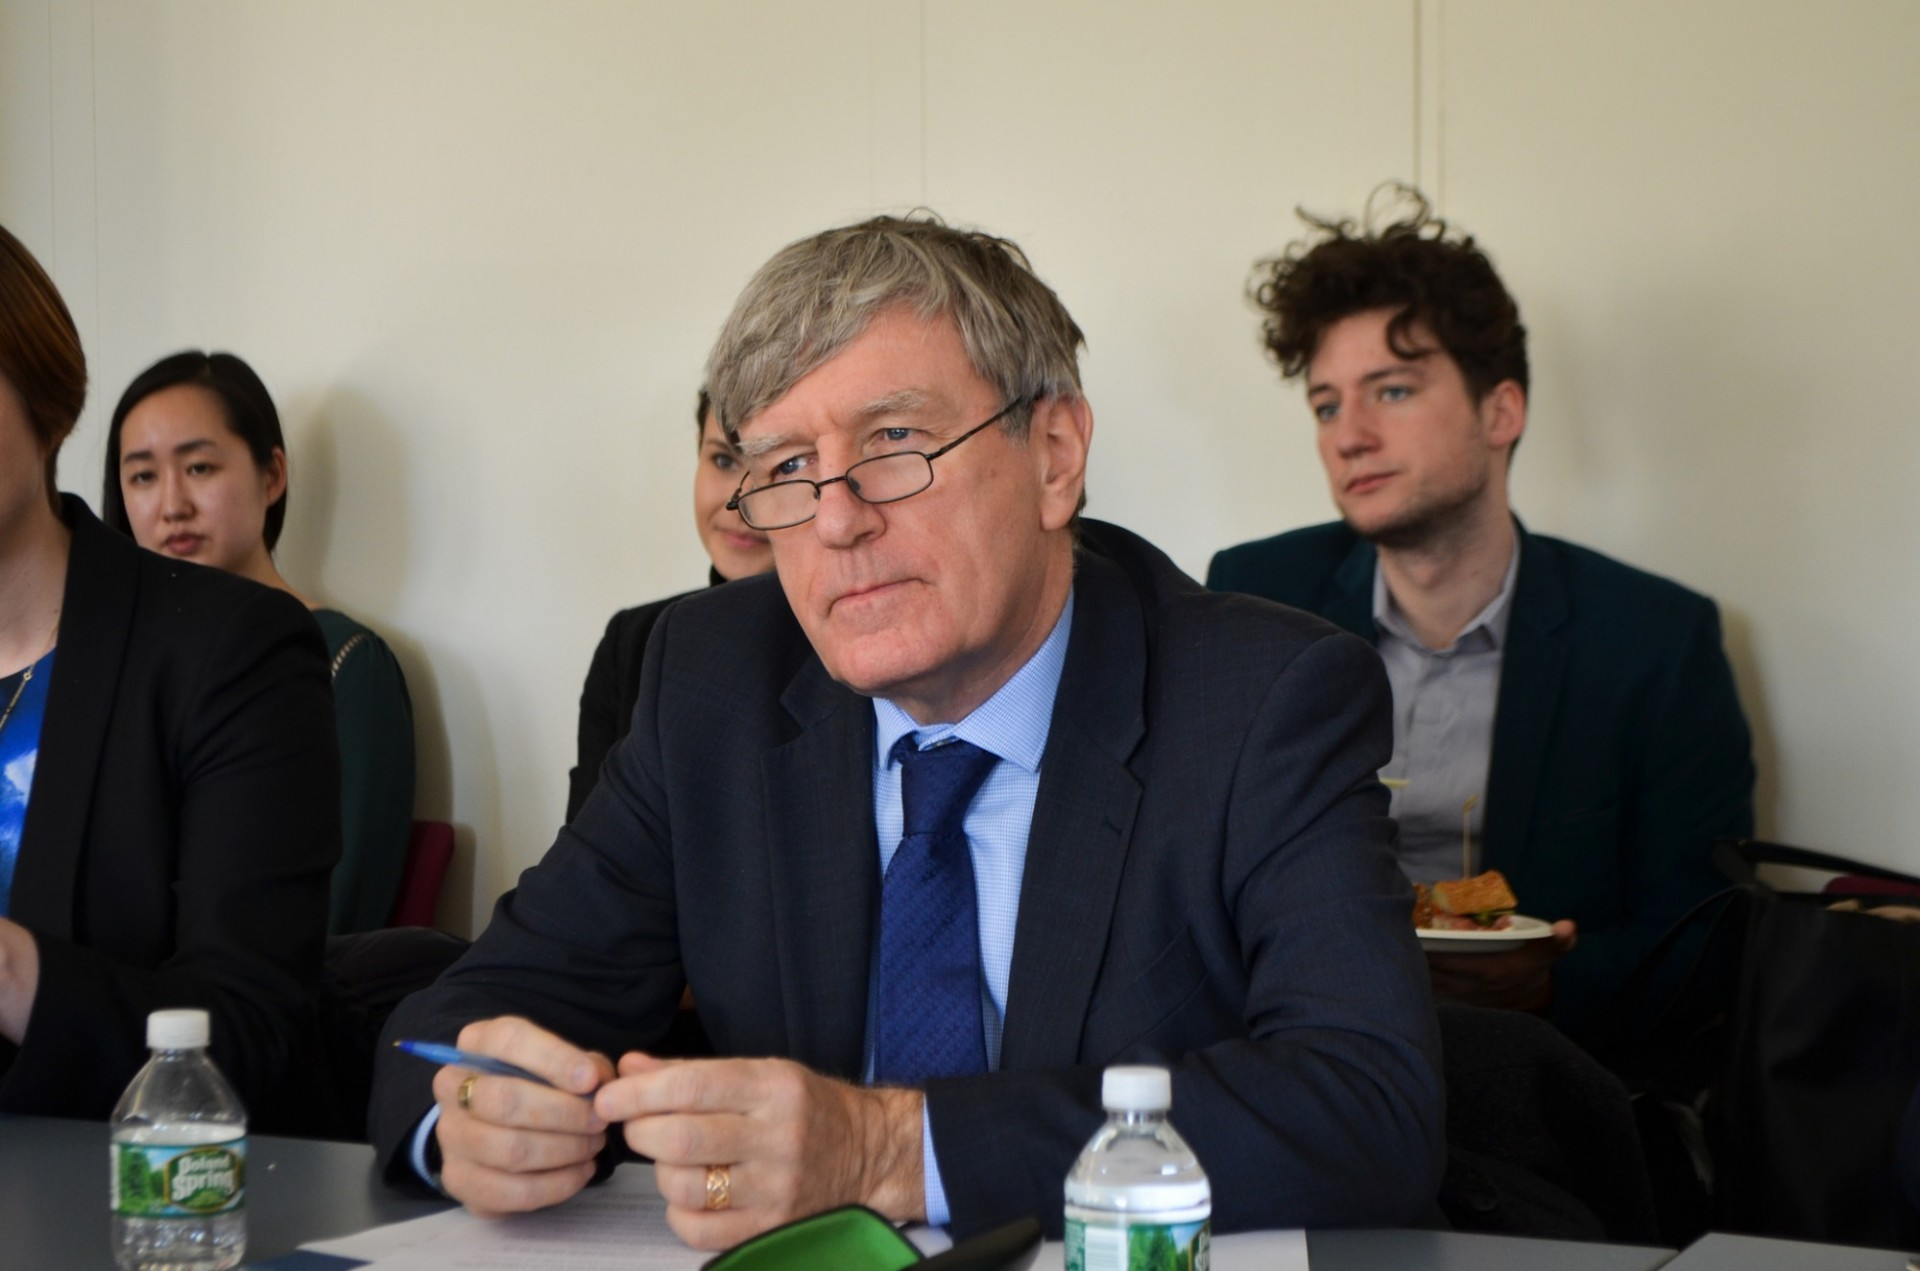 Ambassador Mulhall listens to Columbia students